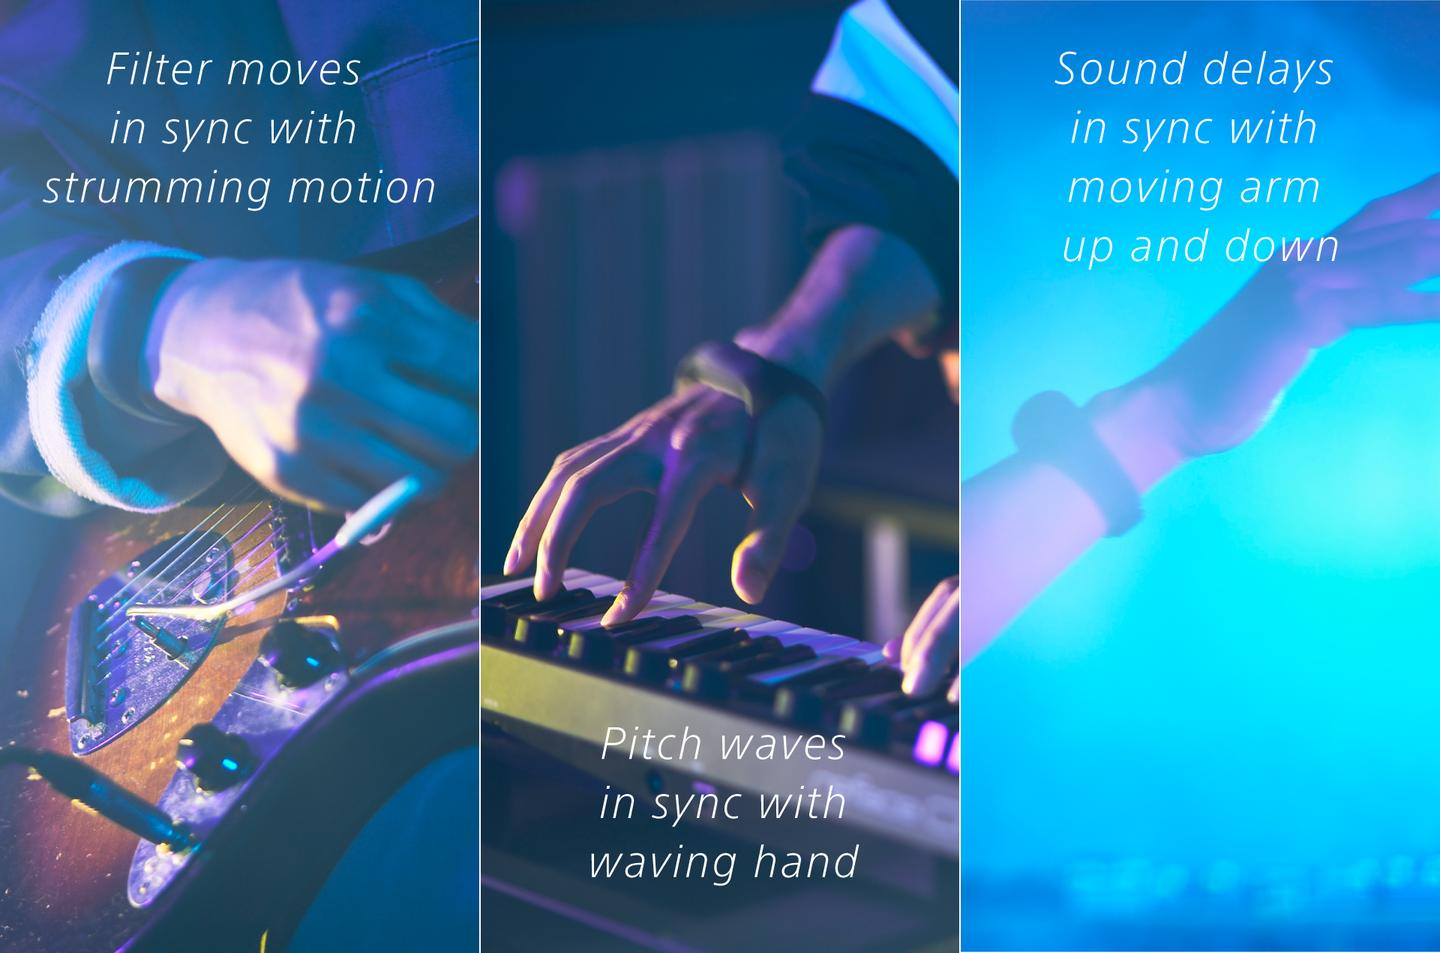 Gestures like waves, rolls and twists can be set to trigger different sound effects